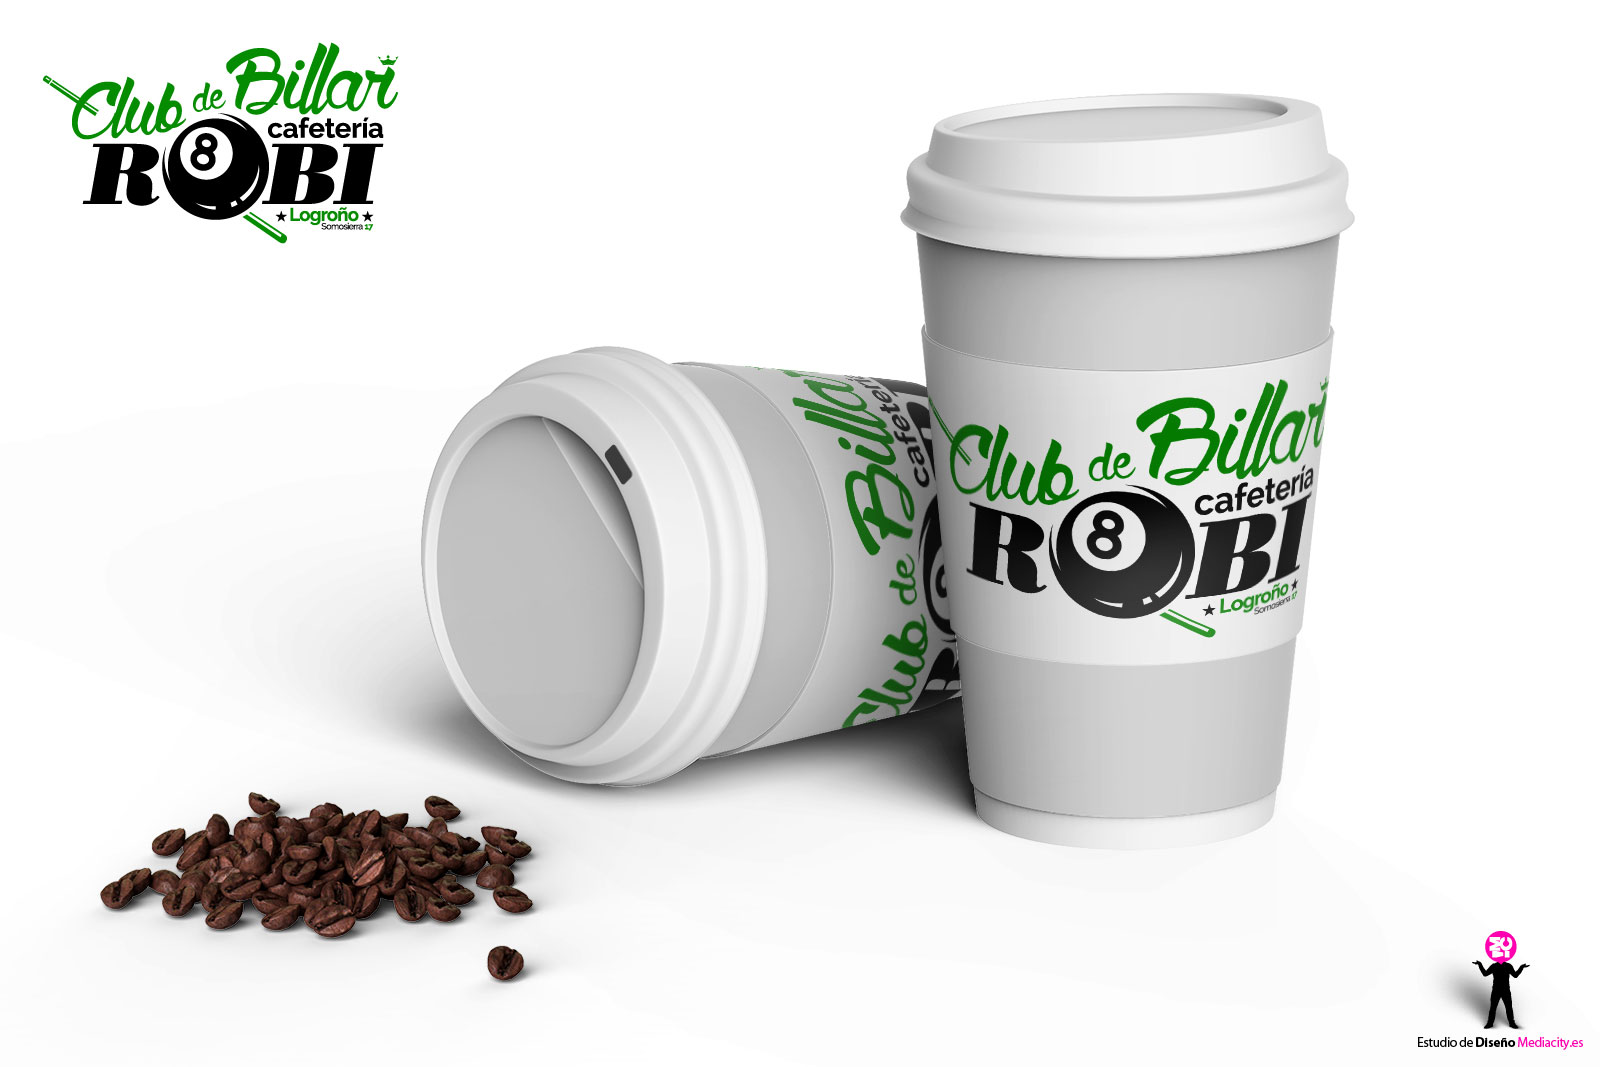 club-de-billar-cafeteria-robi-imagen-packaging-02